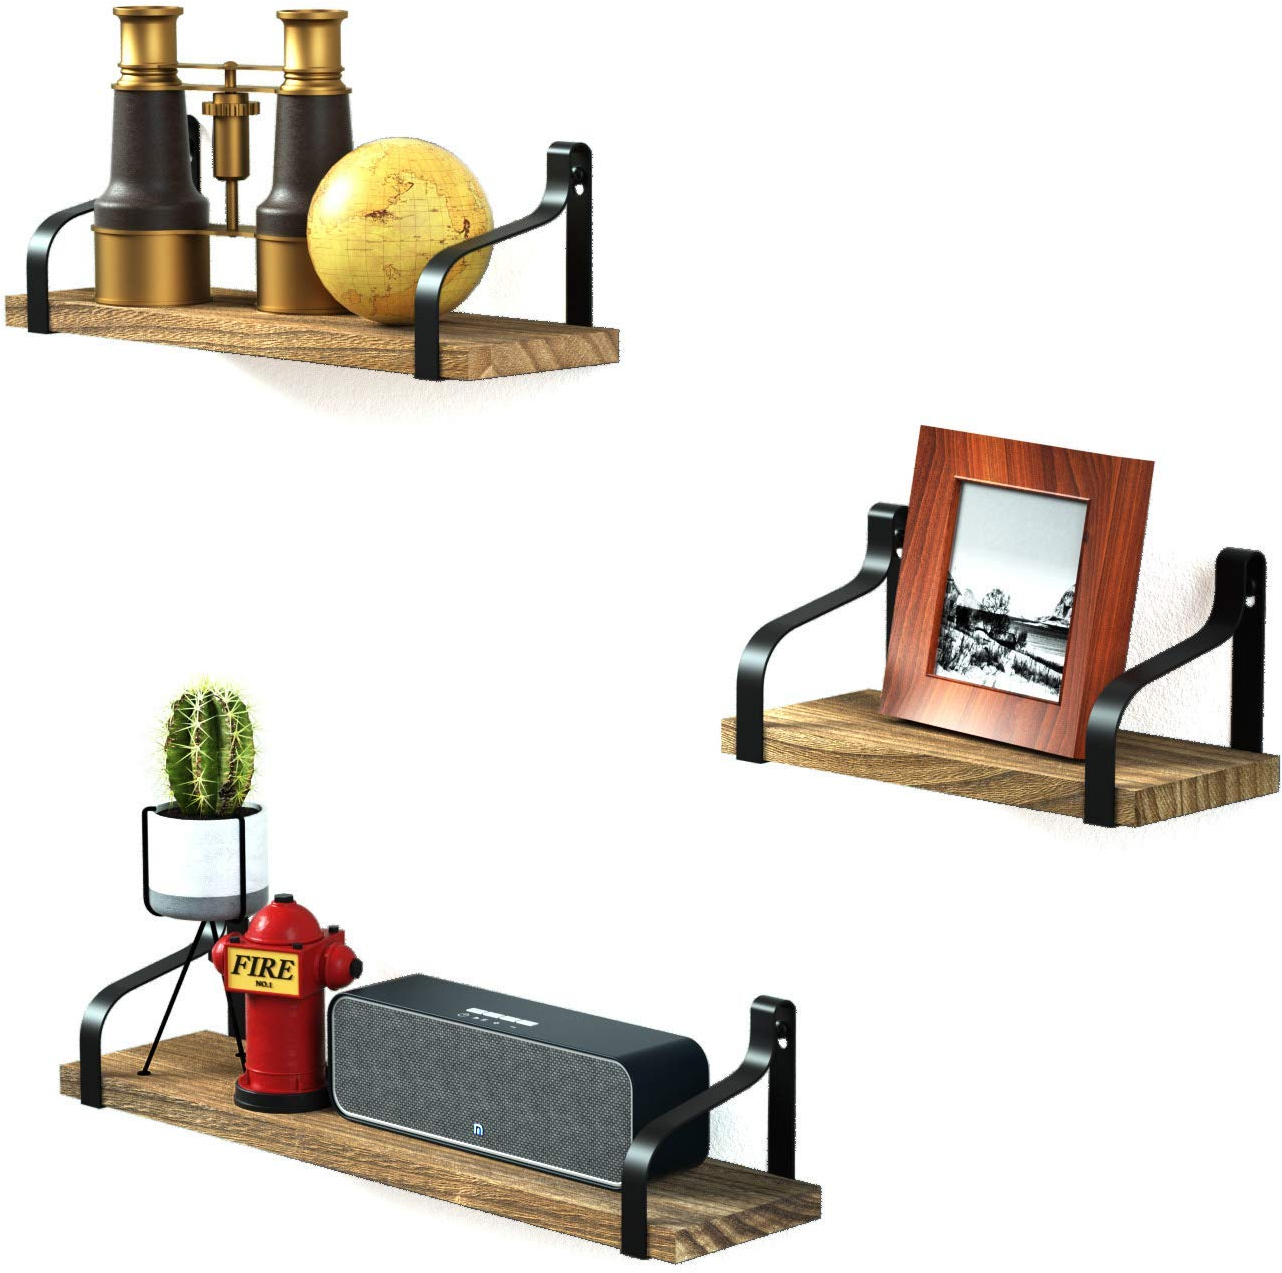 Details About Love Kankei Floating Shelves Decorative Wall Shelf In Retro Style With Iron And